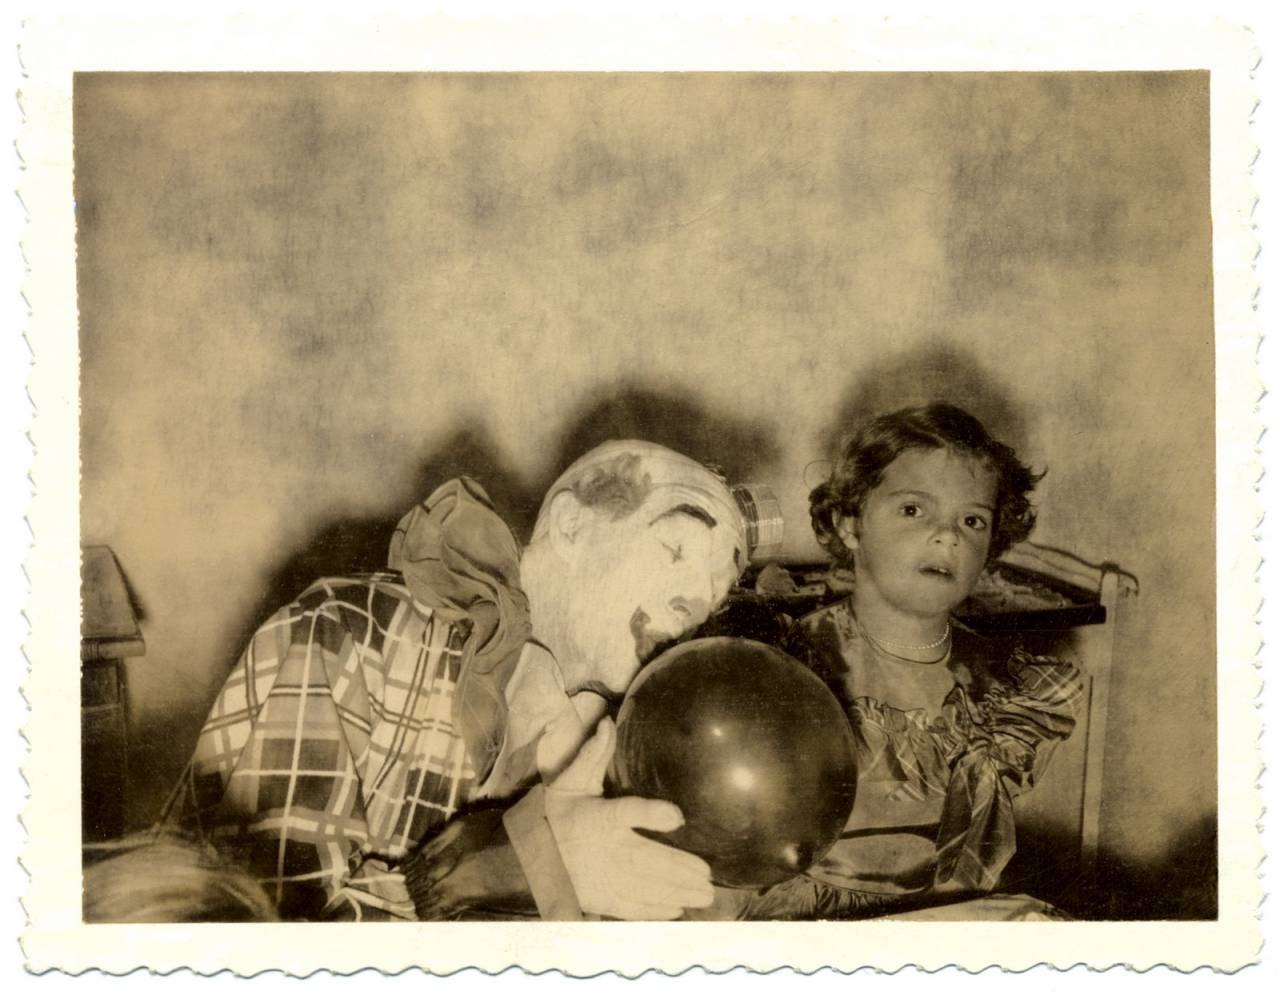 Found photos clowns scary